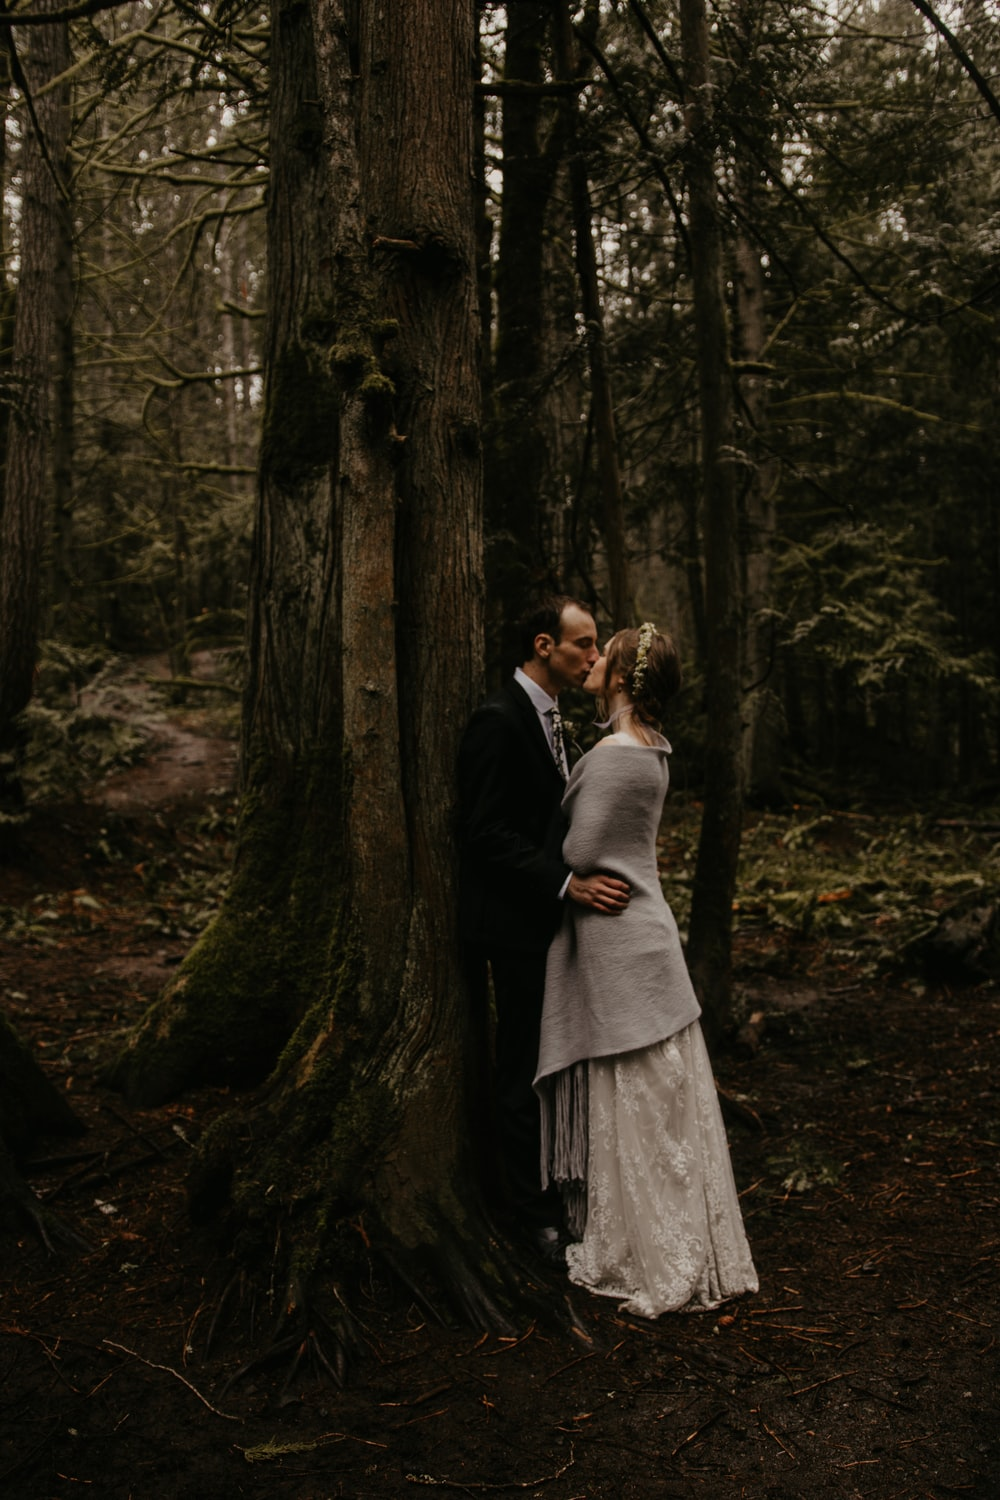 man and woman kissing in forest during daytime